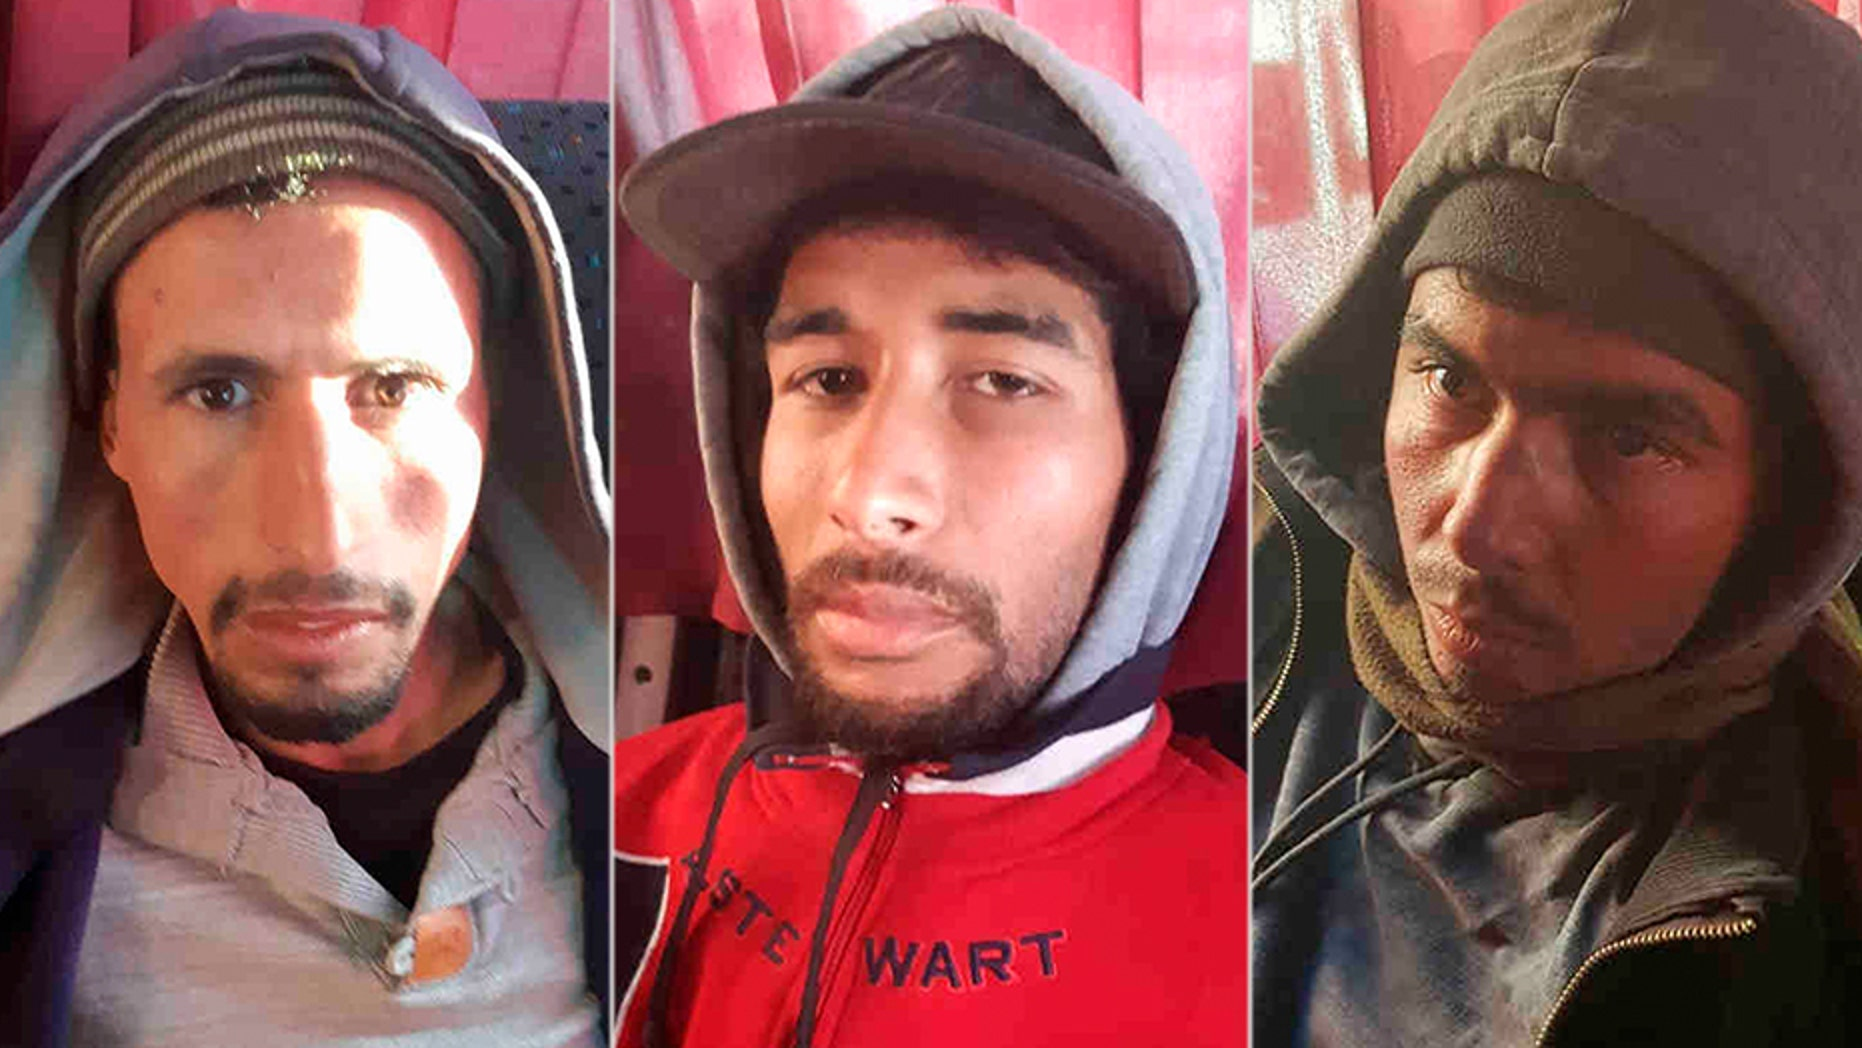 Abdessamad Ejjoud,Rachid Afatti andYounes Ouaziyad are three of the prime suspects in the murder of two Scandinavian hikers